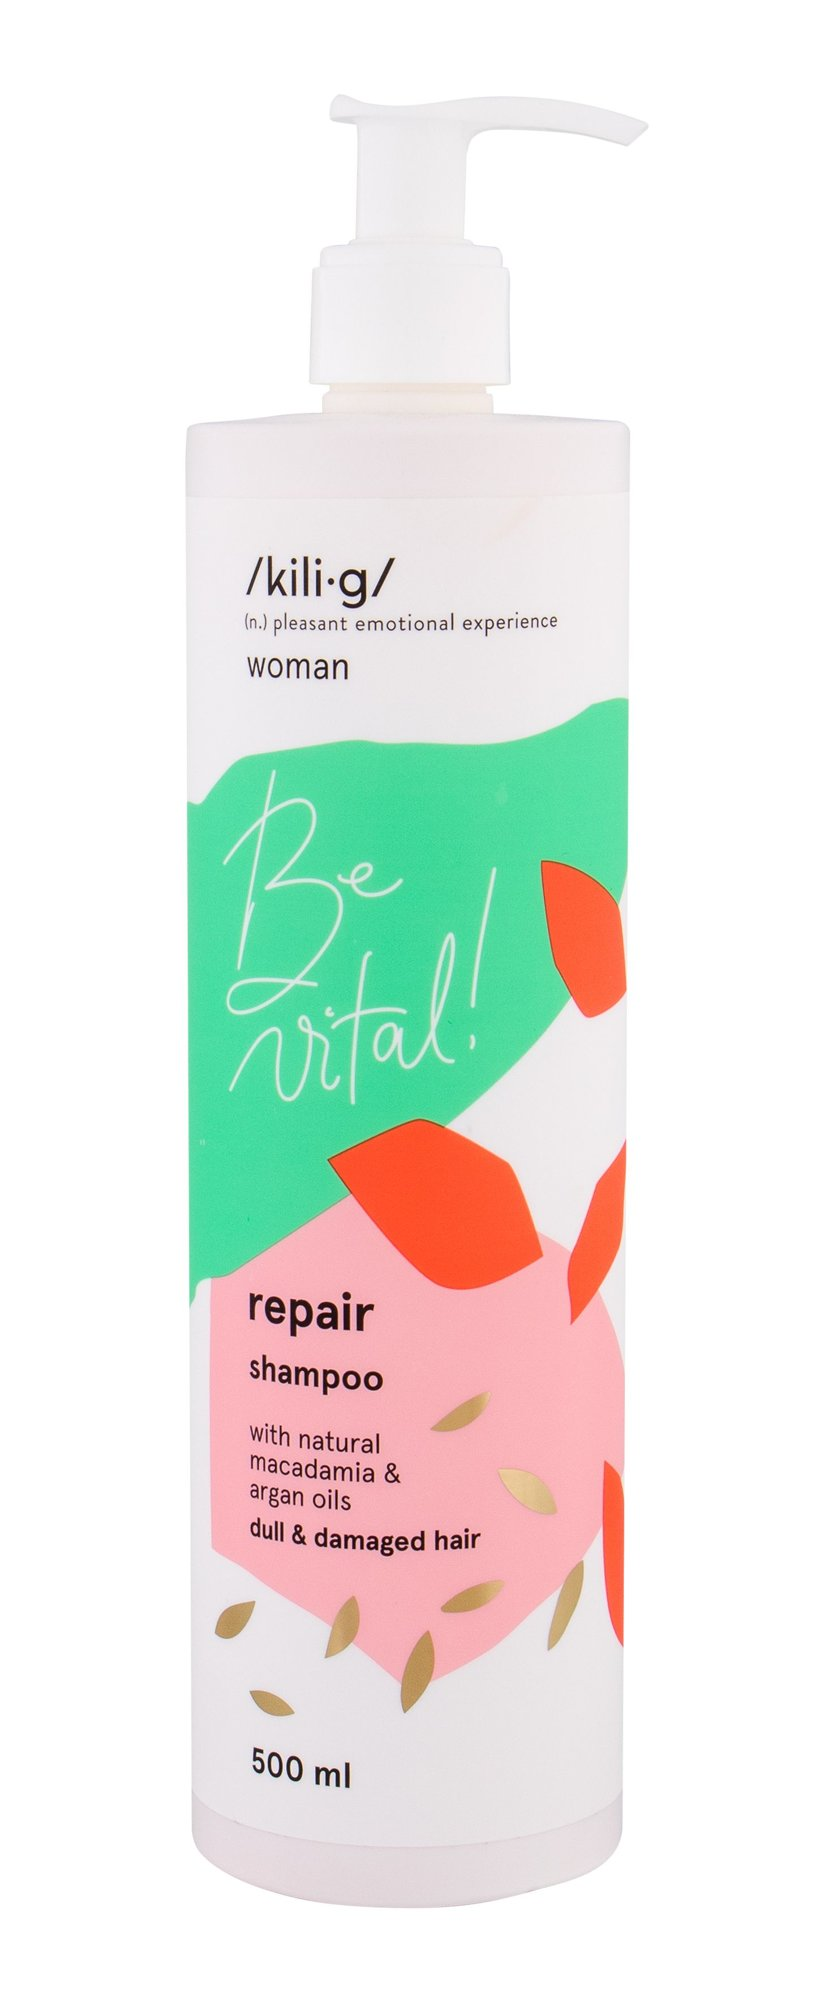 kili·g woman repair Shampoo 500ml